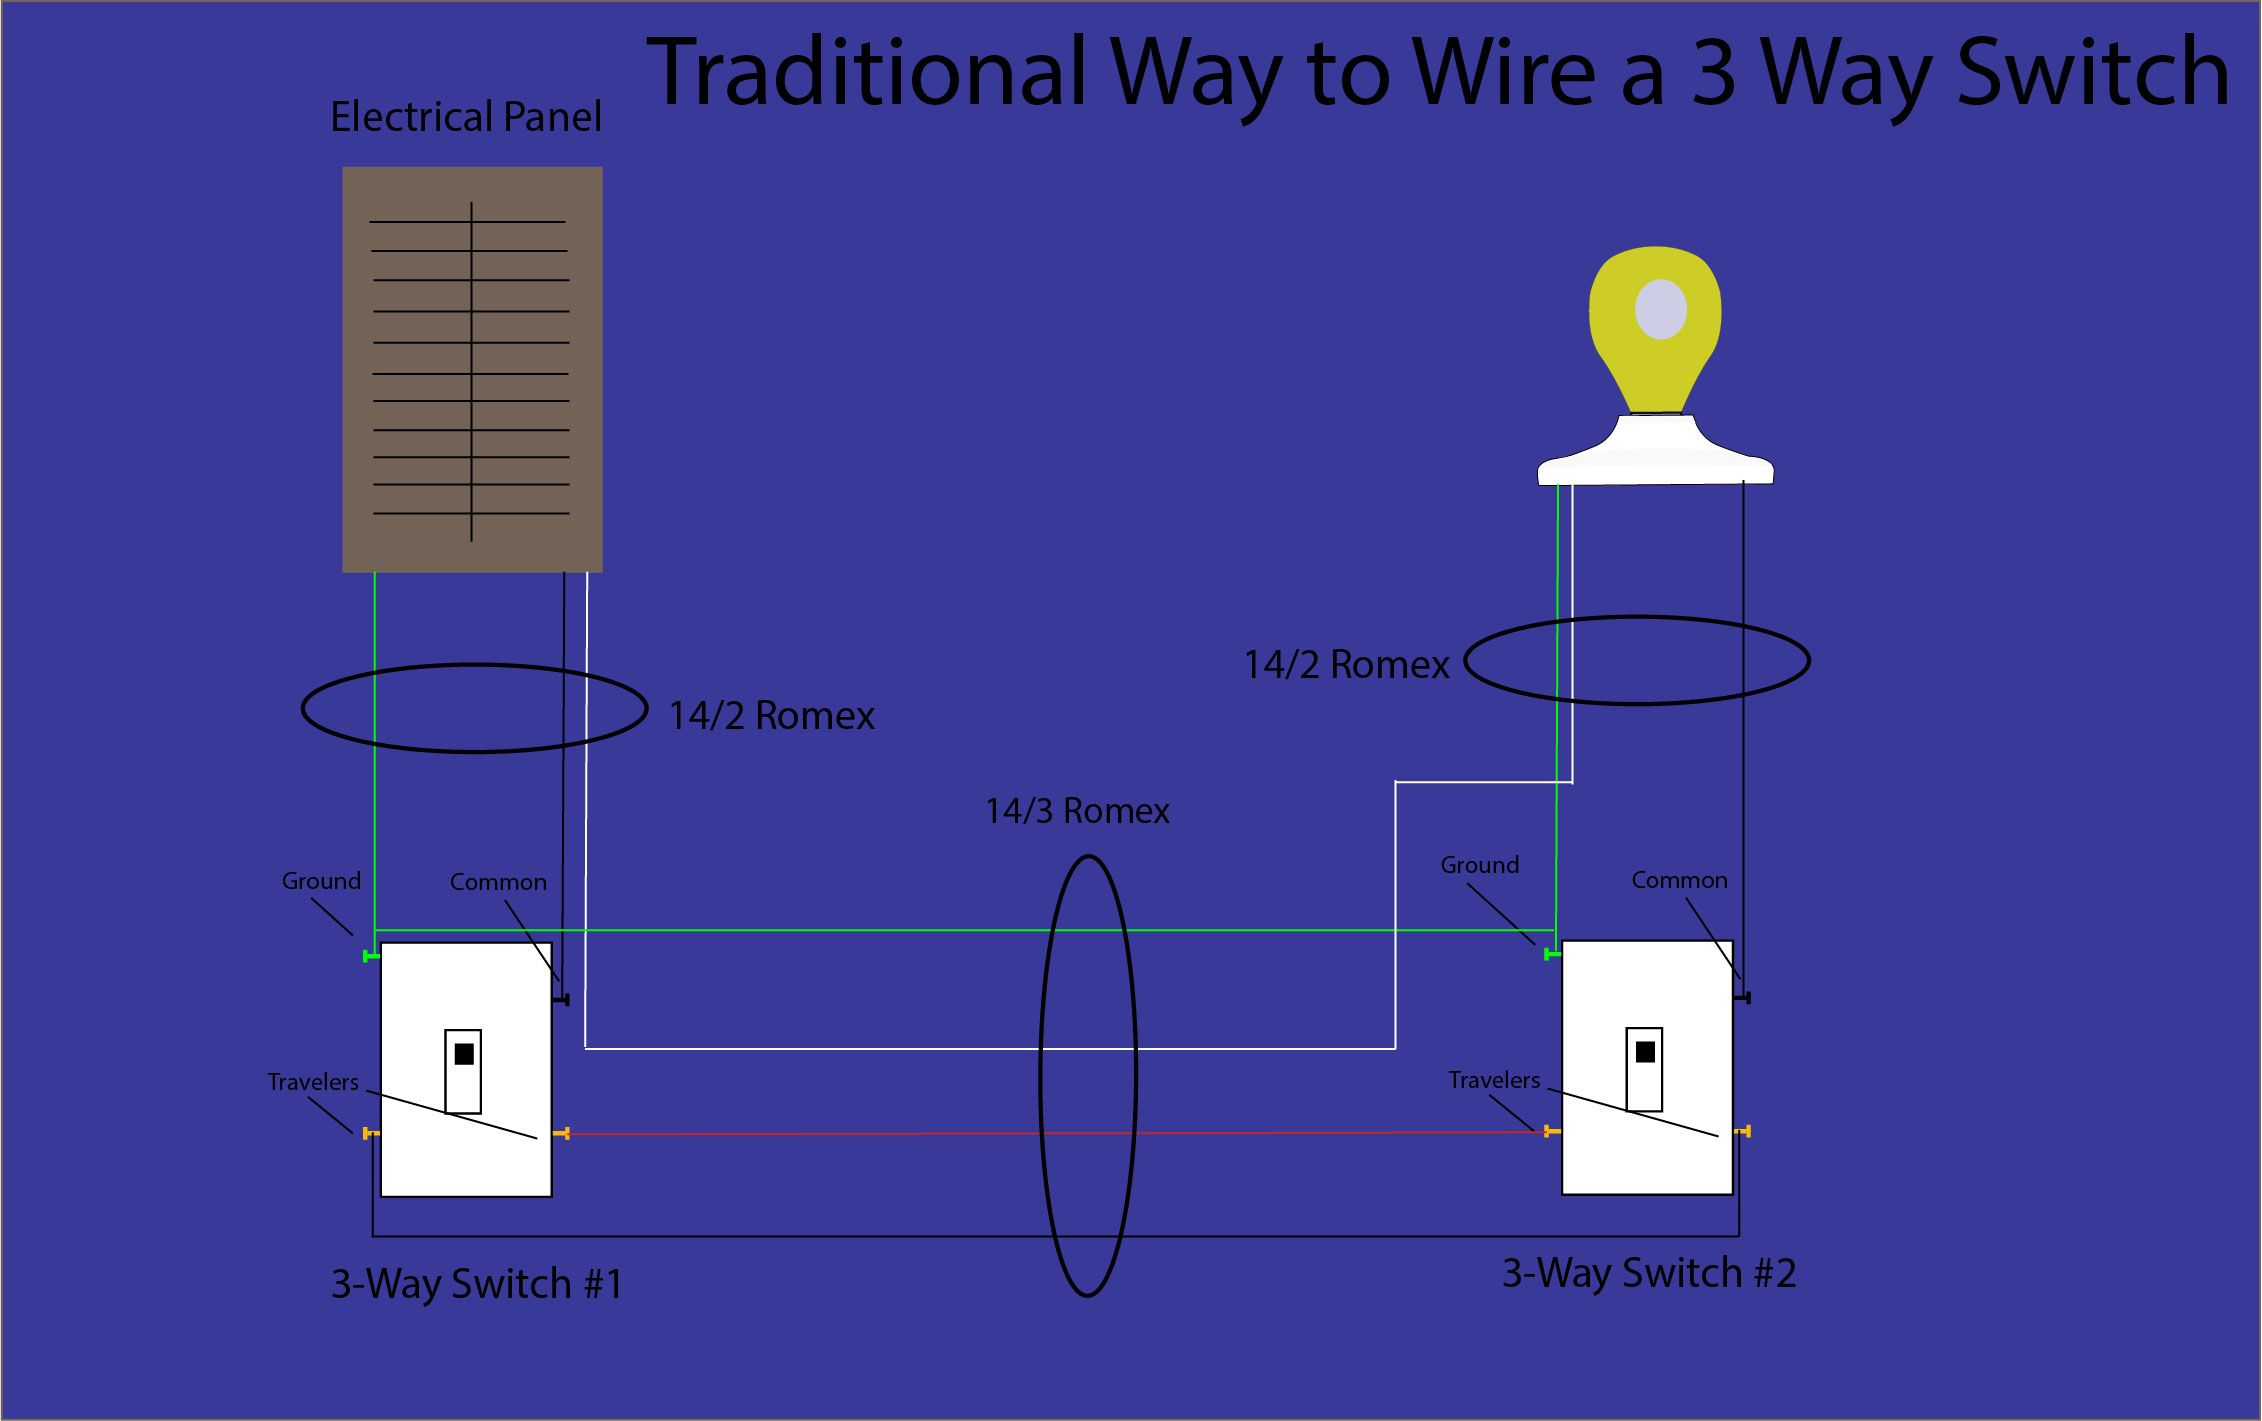 13 Good Wiring Diagram For 3 Way Switch Design